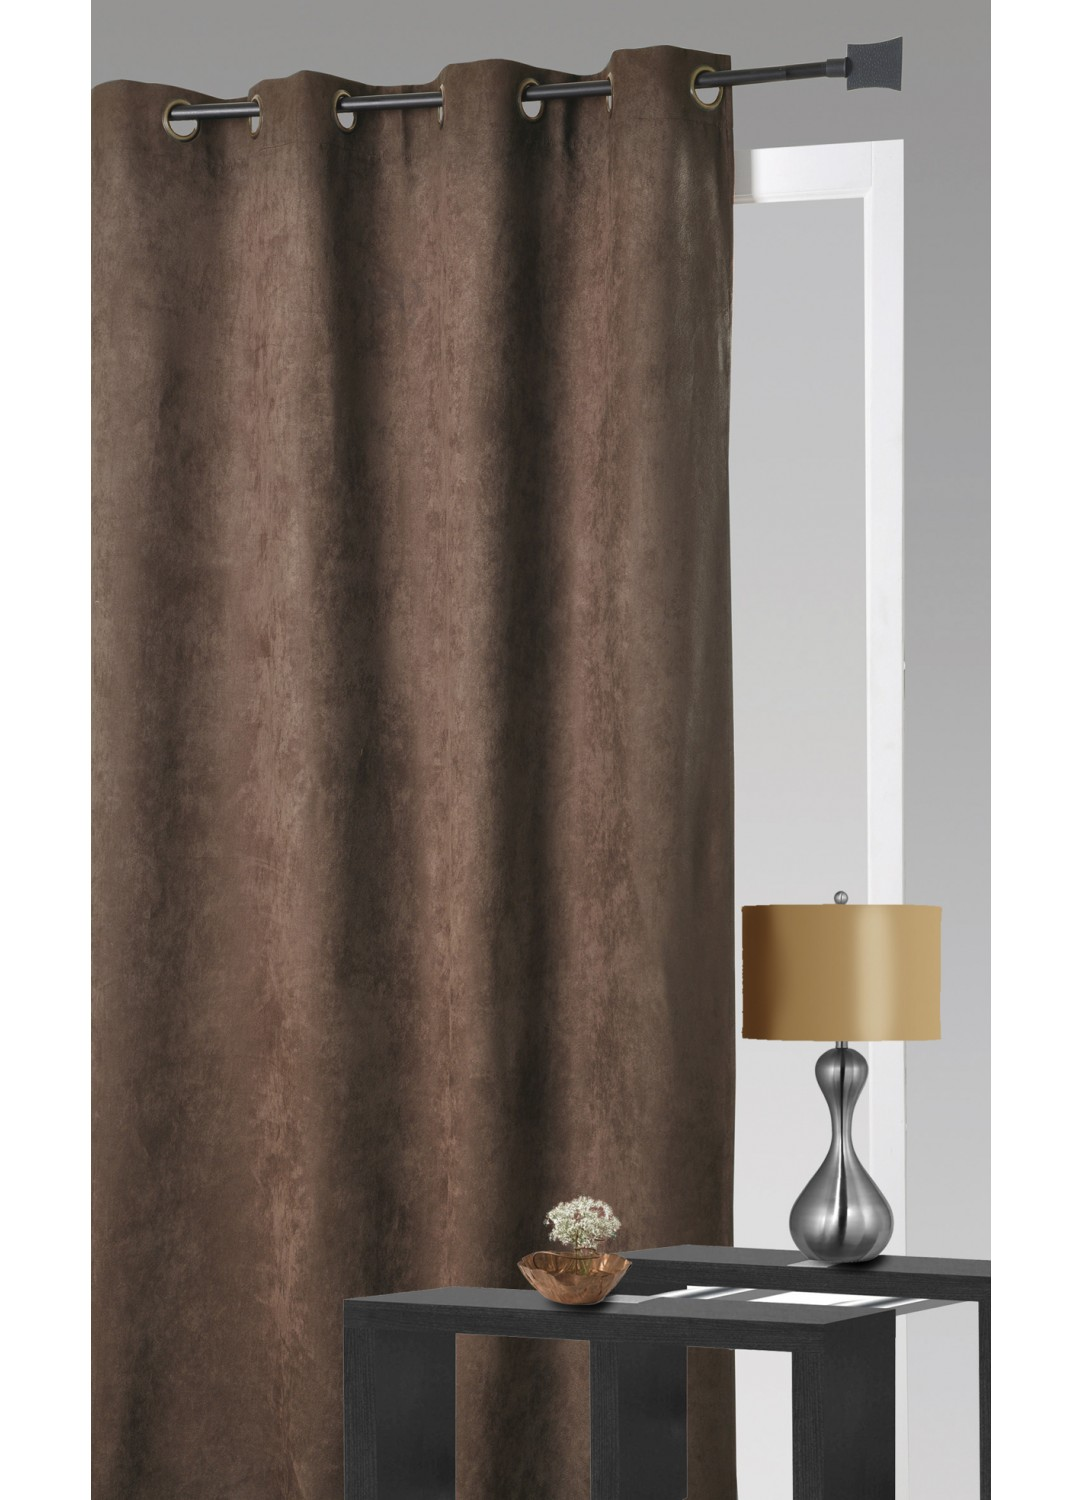 rideau doubl occultant et face su dine unie chocolat figue beige taupe gris. Black Bedroom Furniture Sets. Home Design Ideas